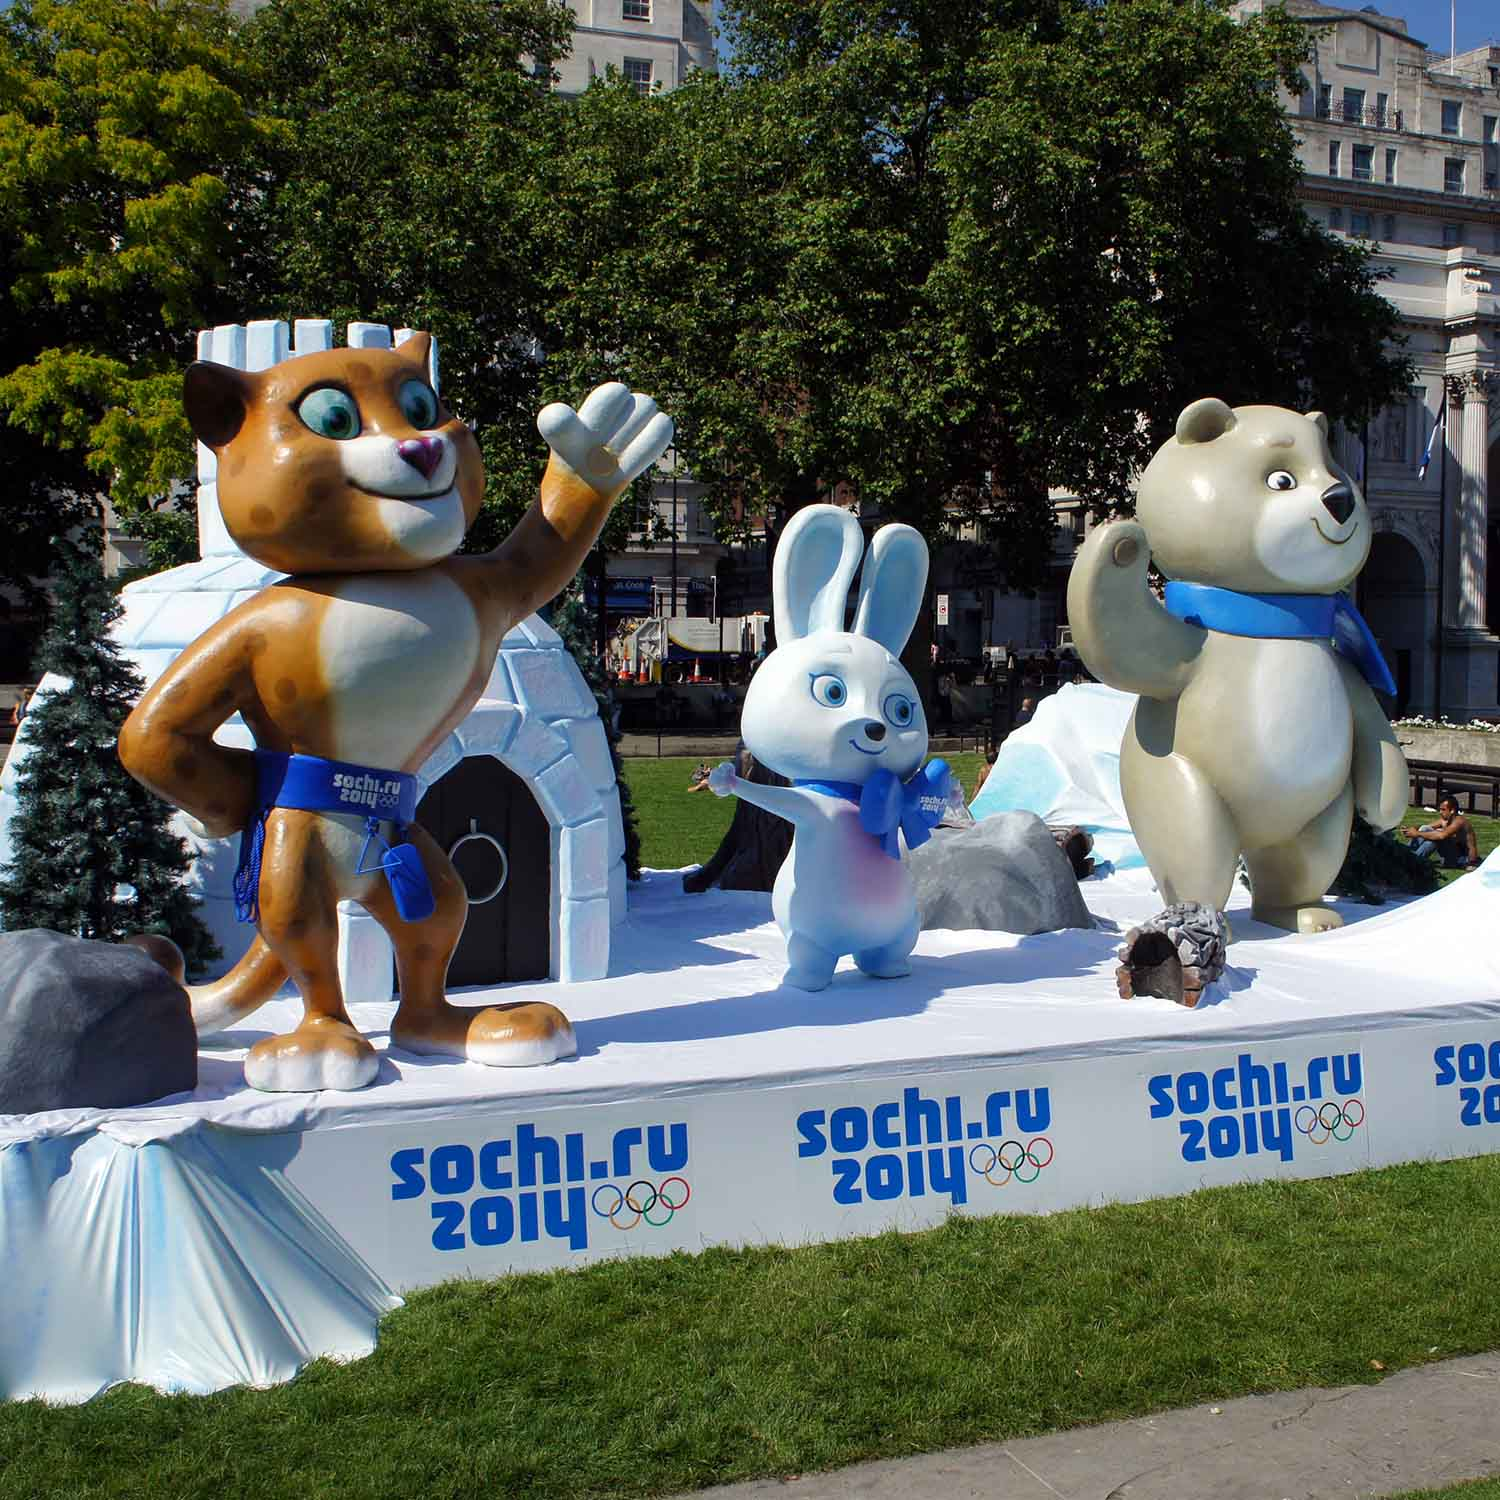 Mascot Sculptures for Olympics 2014